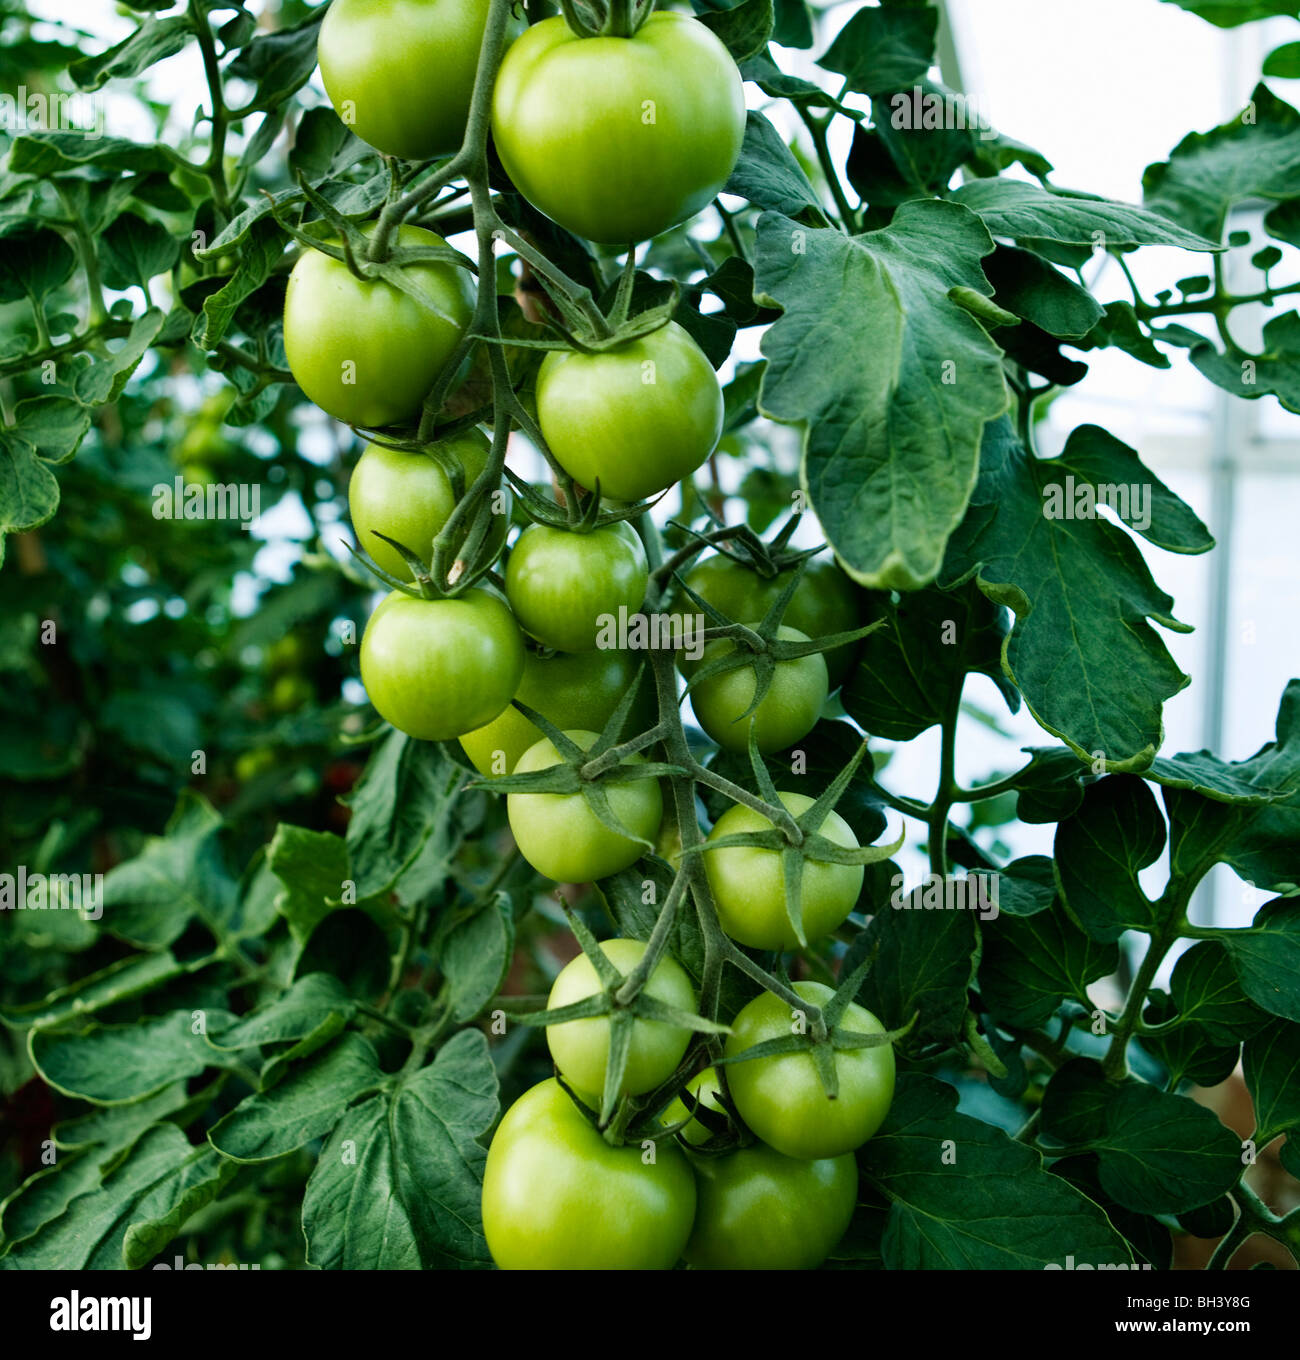 Green tomatoes growing on the stem Stock Photo